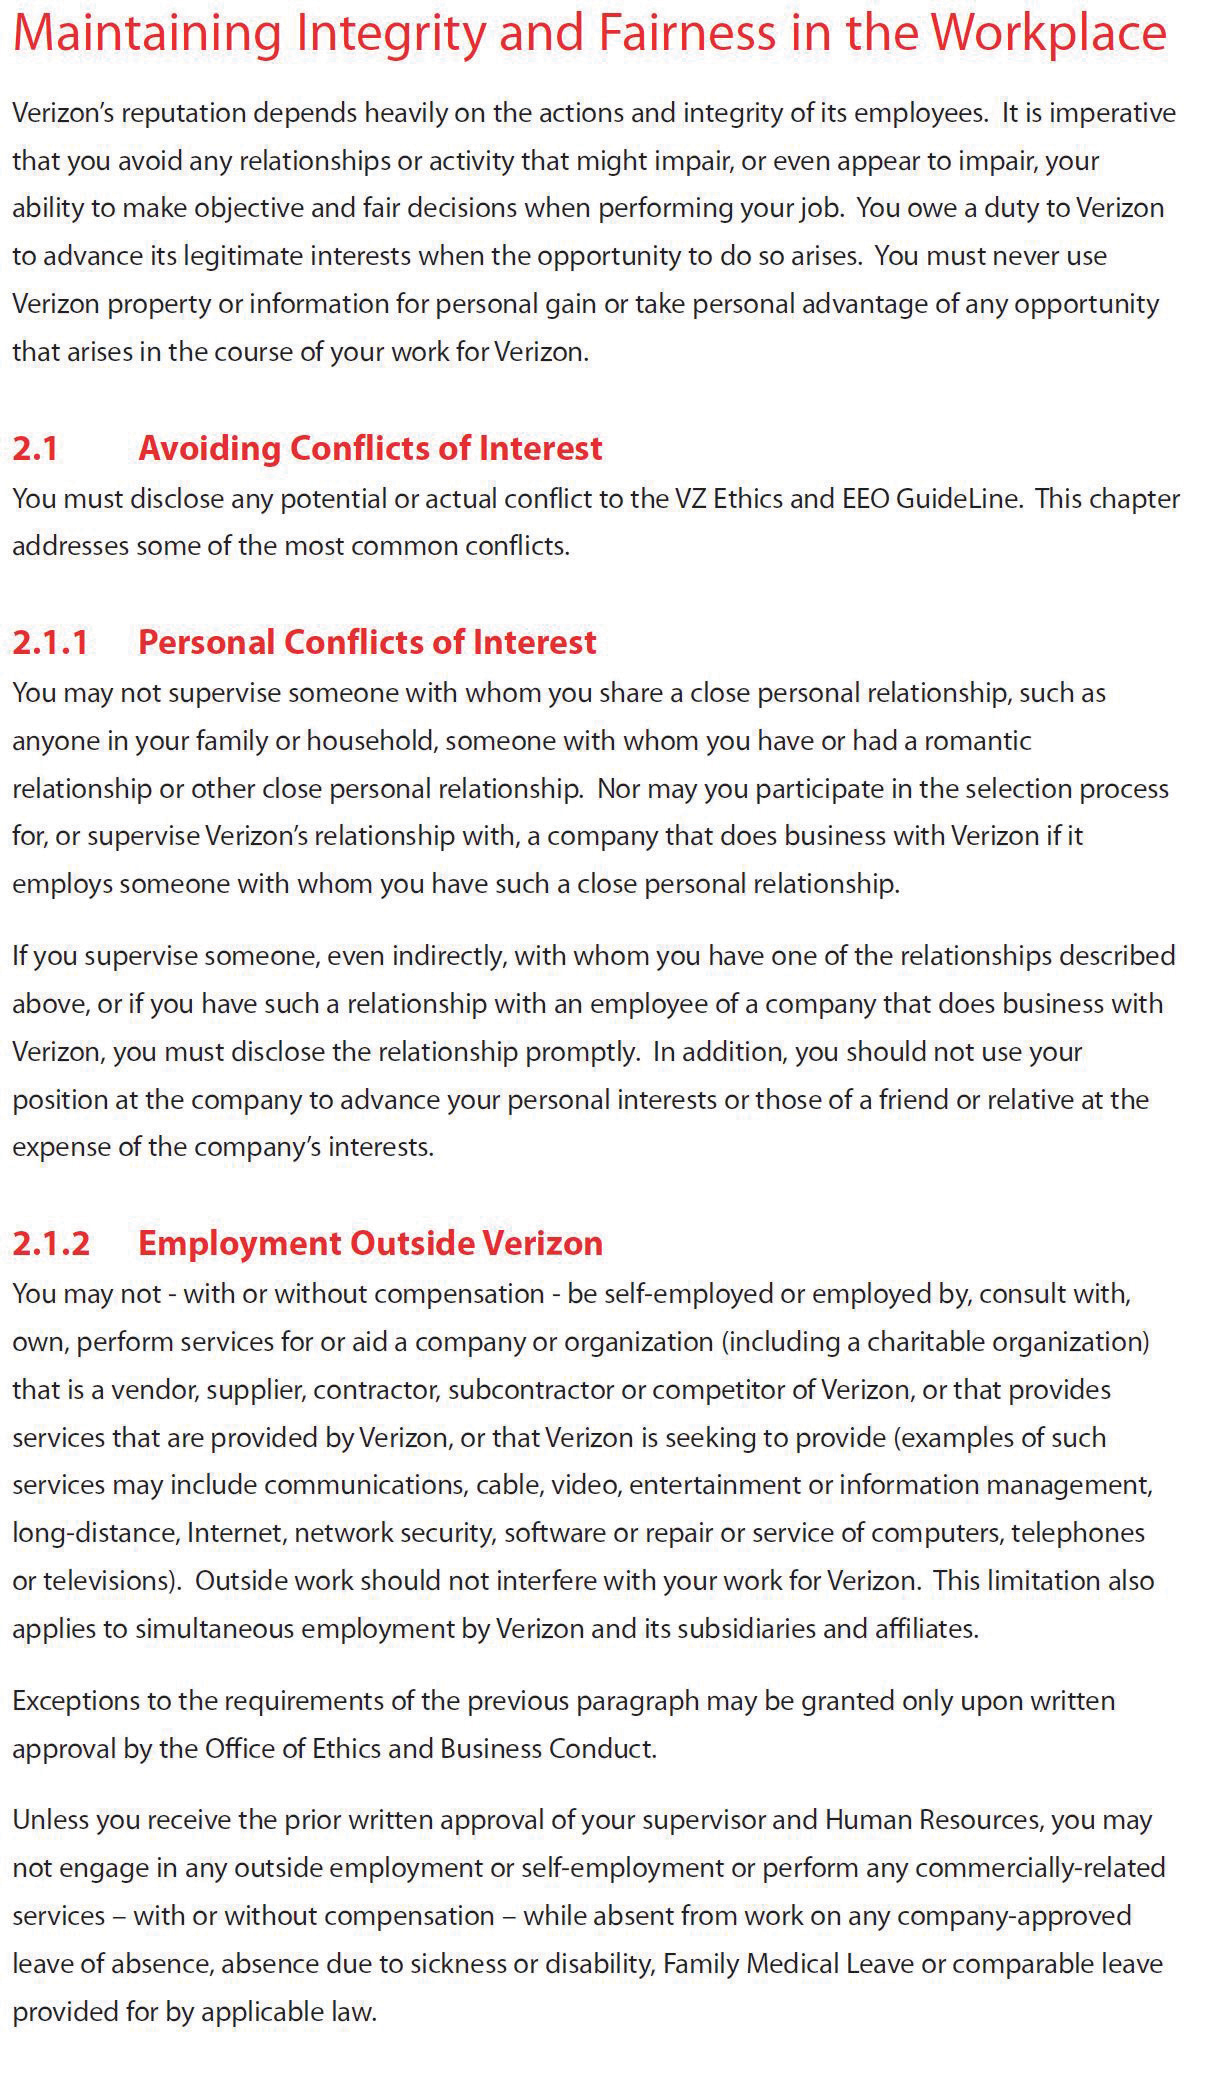 be ethical at work verizon for example has a forty page code of conduct that outlines ethical expectations this is an excerpt from that code of conduct